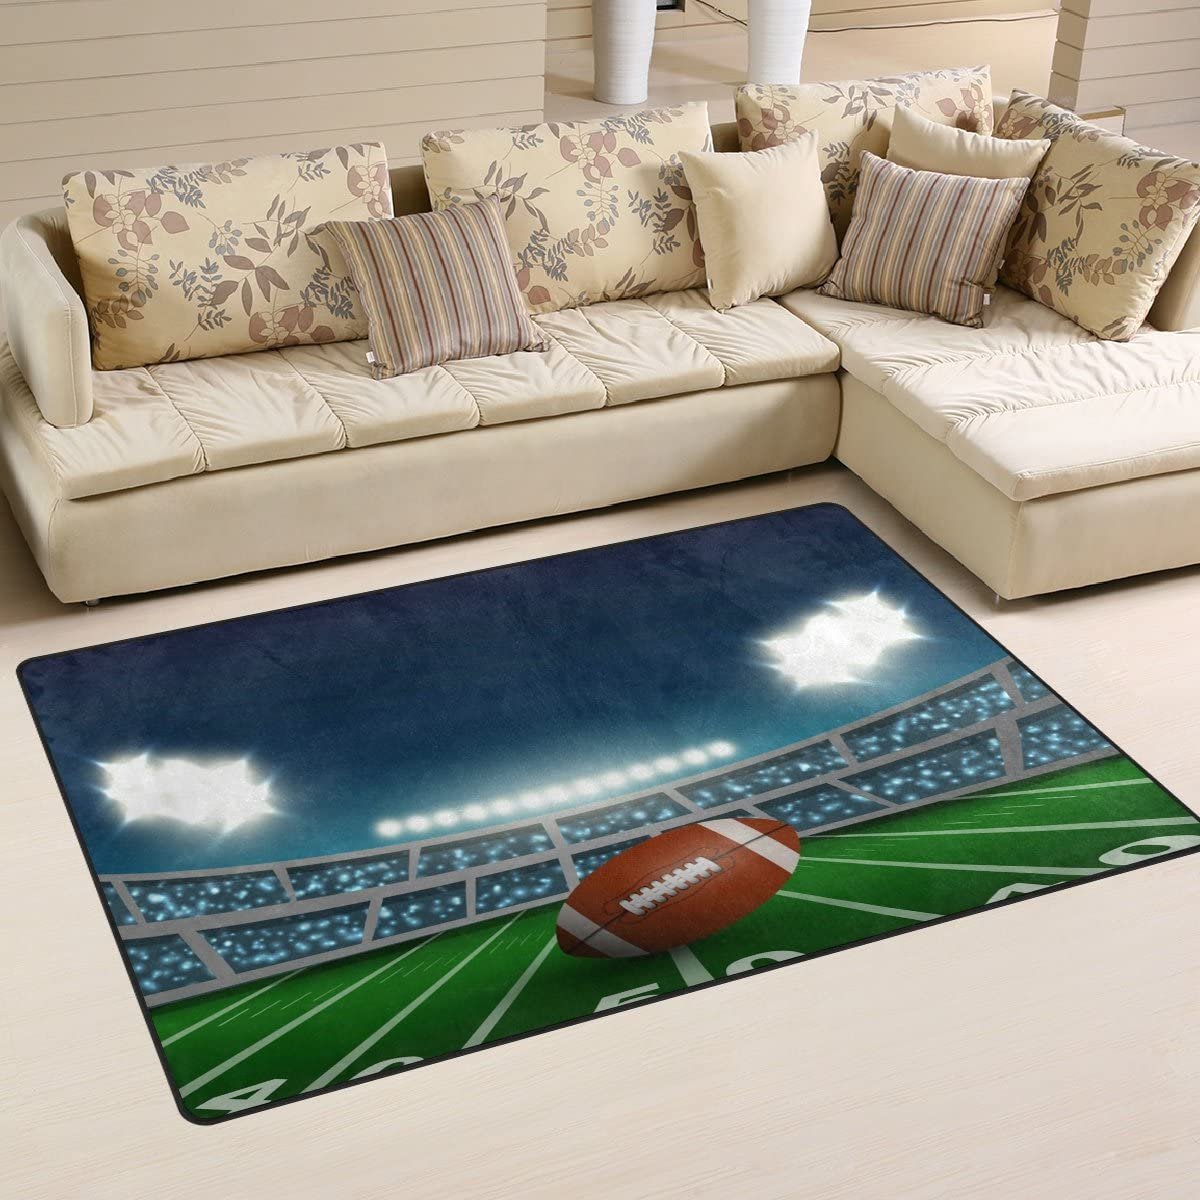 WOZO American Football Stadium Area Rug Rugs Non-Slip Floor Mat Doormats Living Dining Room Bedroom Dorm 60 x 39 inches inches Home Decor